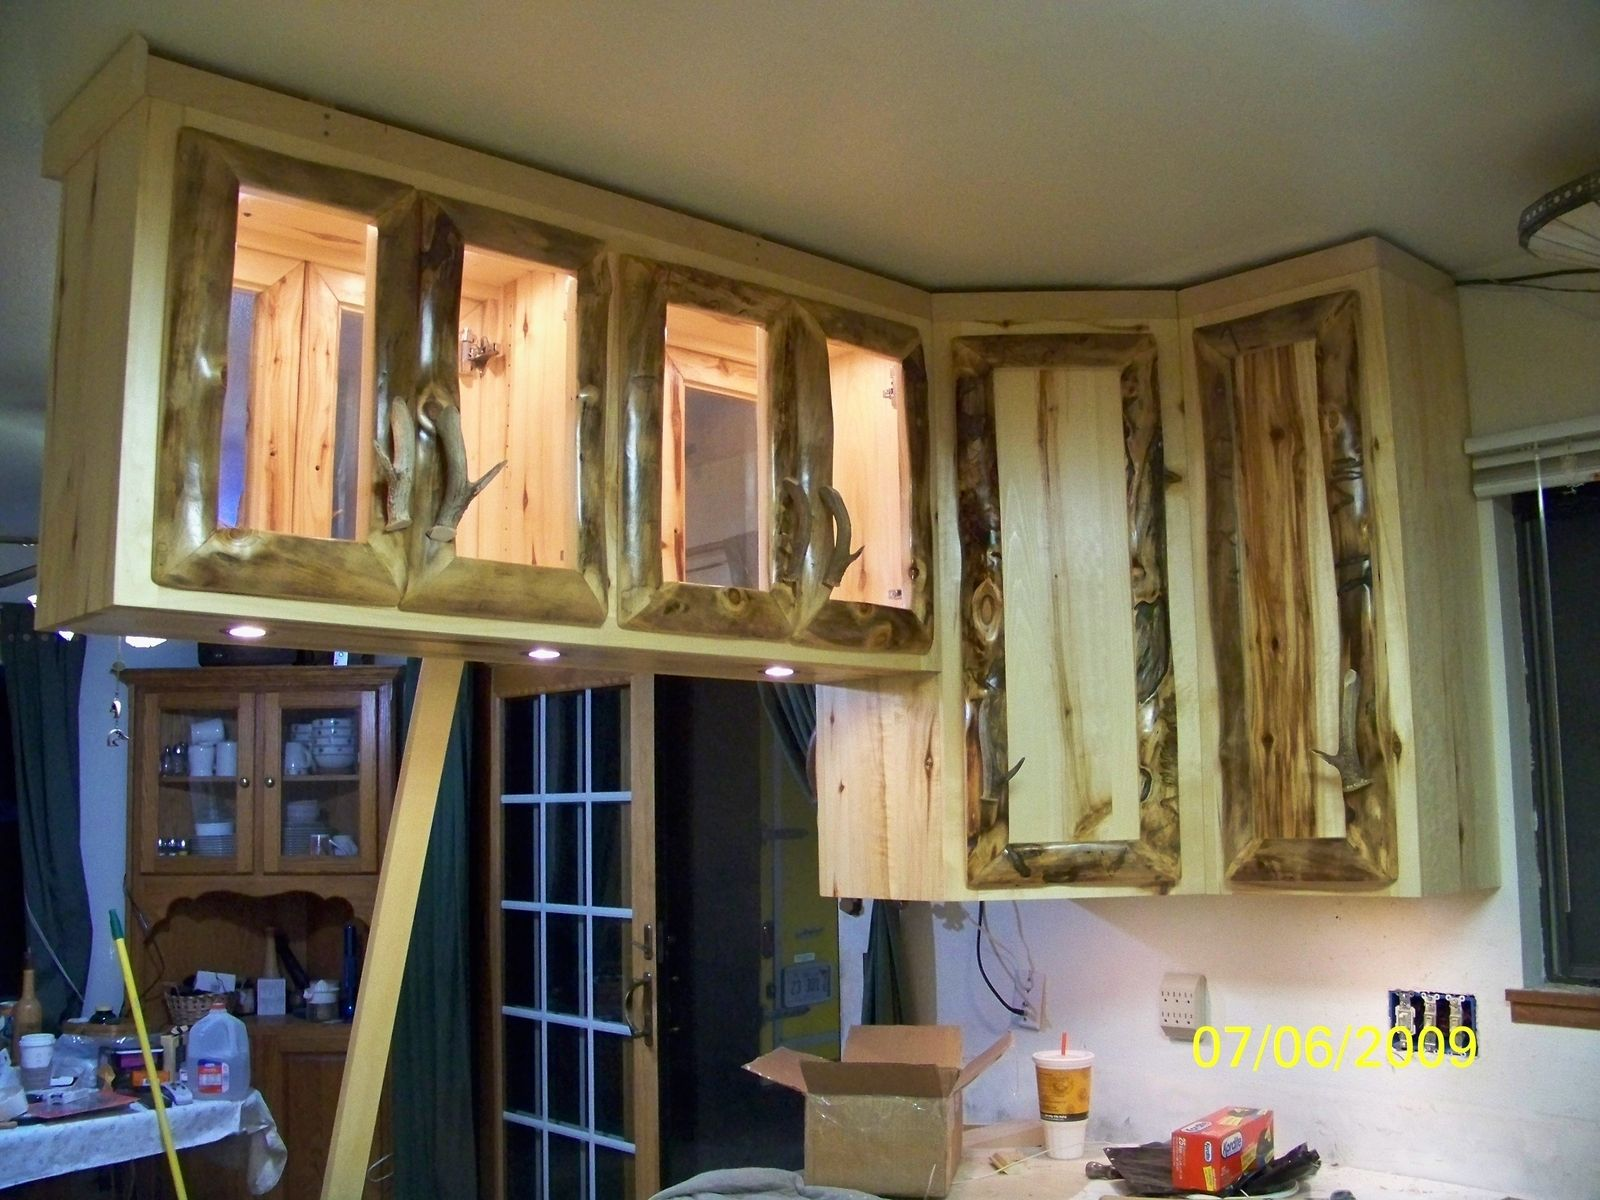 Custom Made Rustic Aspen Log Kitchen Cabinets And Built In Wall E Rack